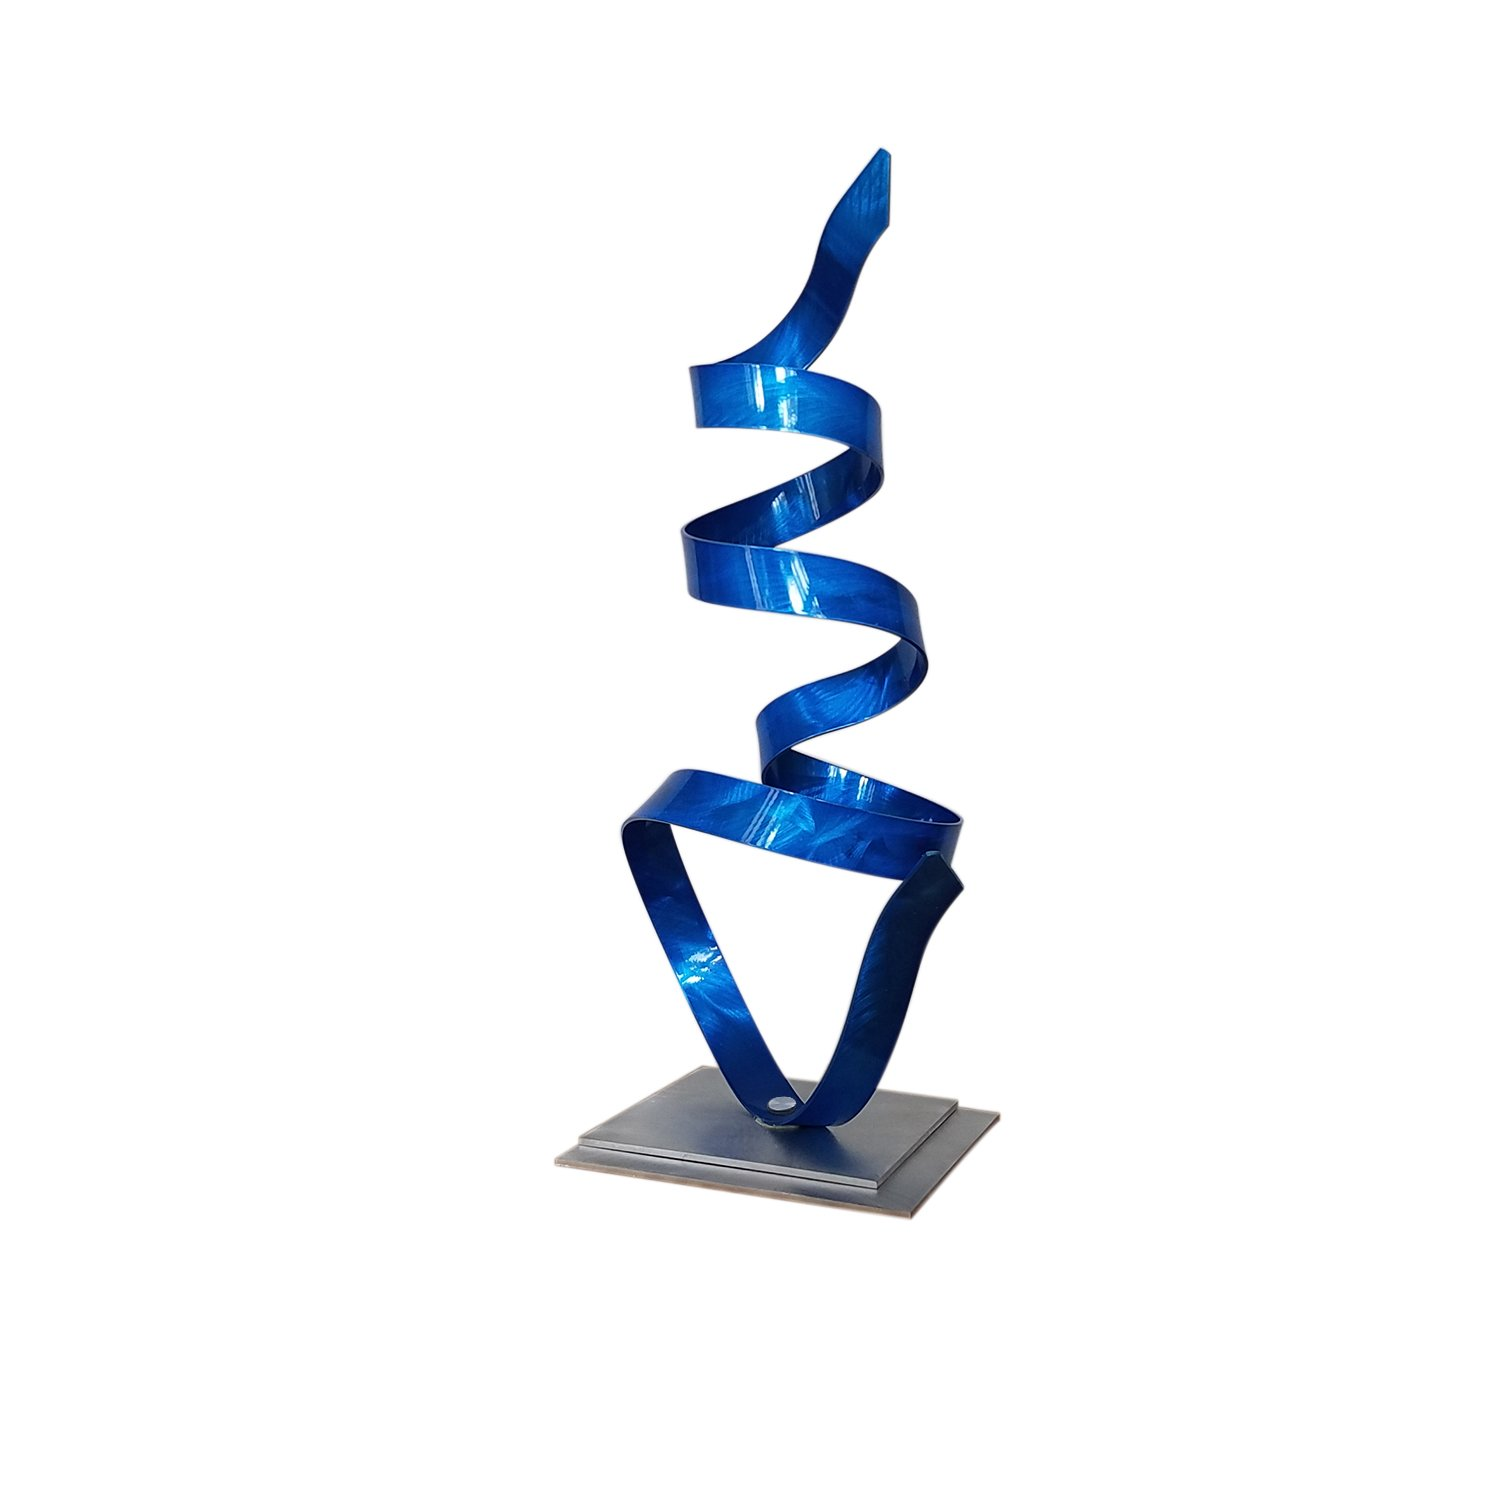 Statements2000 Blue Contemporary Centerpiece, Modern Table Decor, Abstract Metal Art - Kitchen, Office, Mantel, Coffee Table Decor - Blue Whisper Accent by Jon Allen - 18.5""